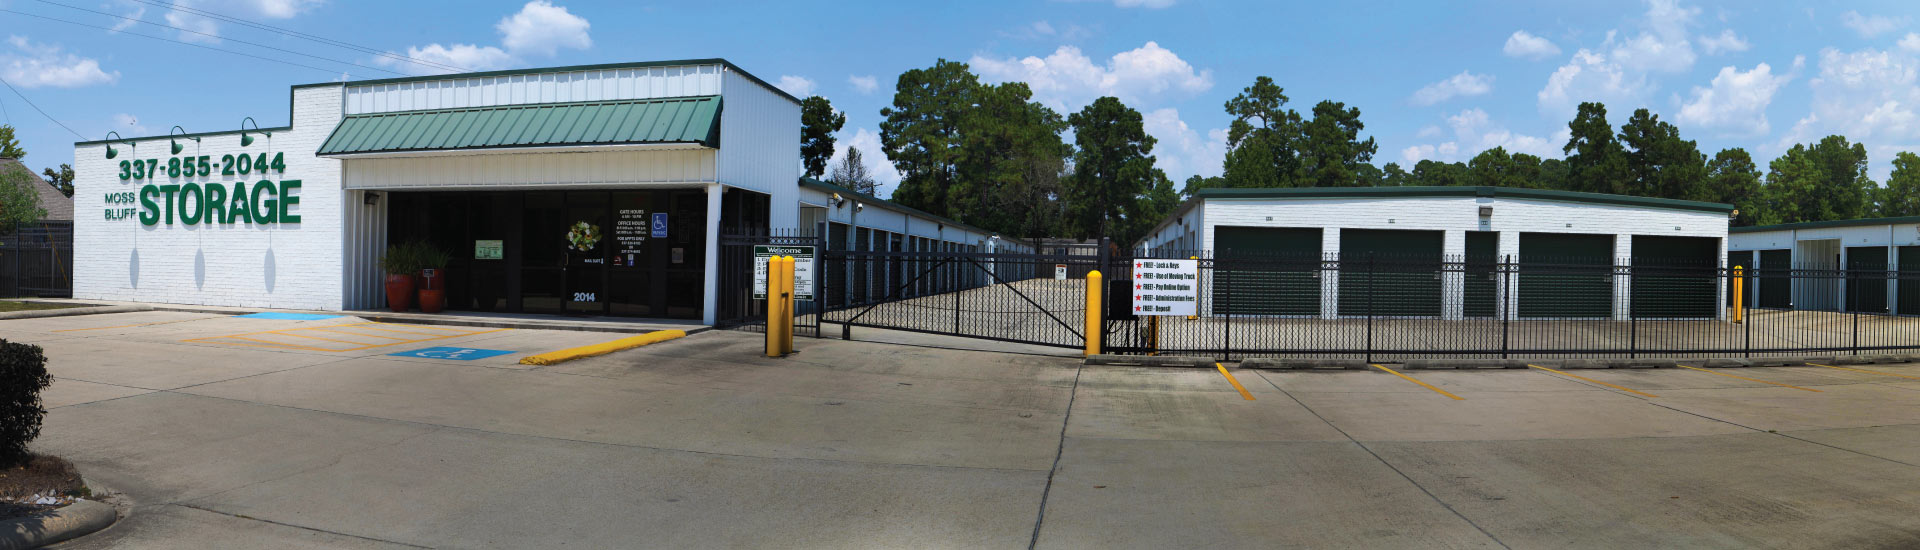 Front of Moss Bluff Storage Facility